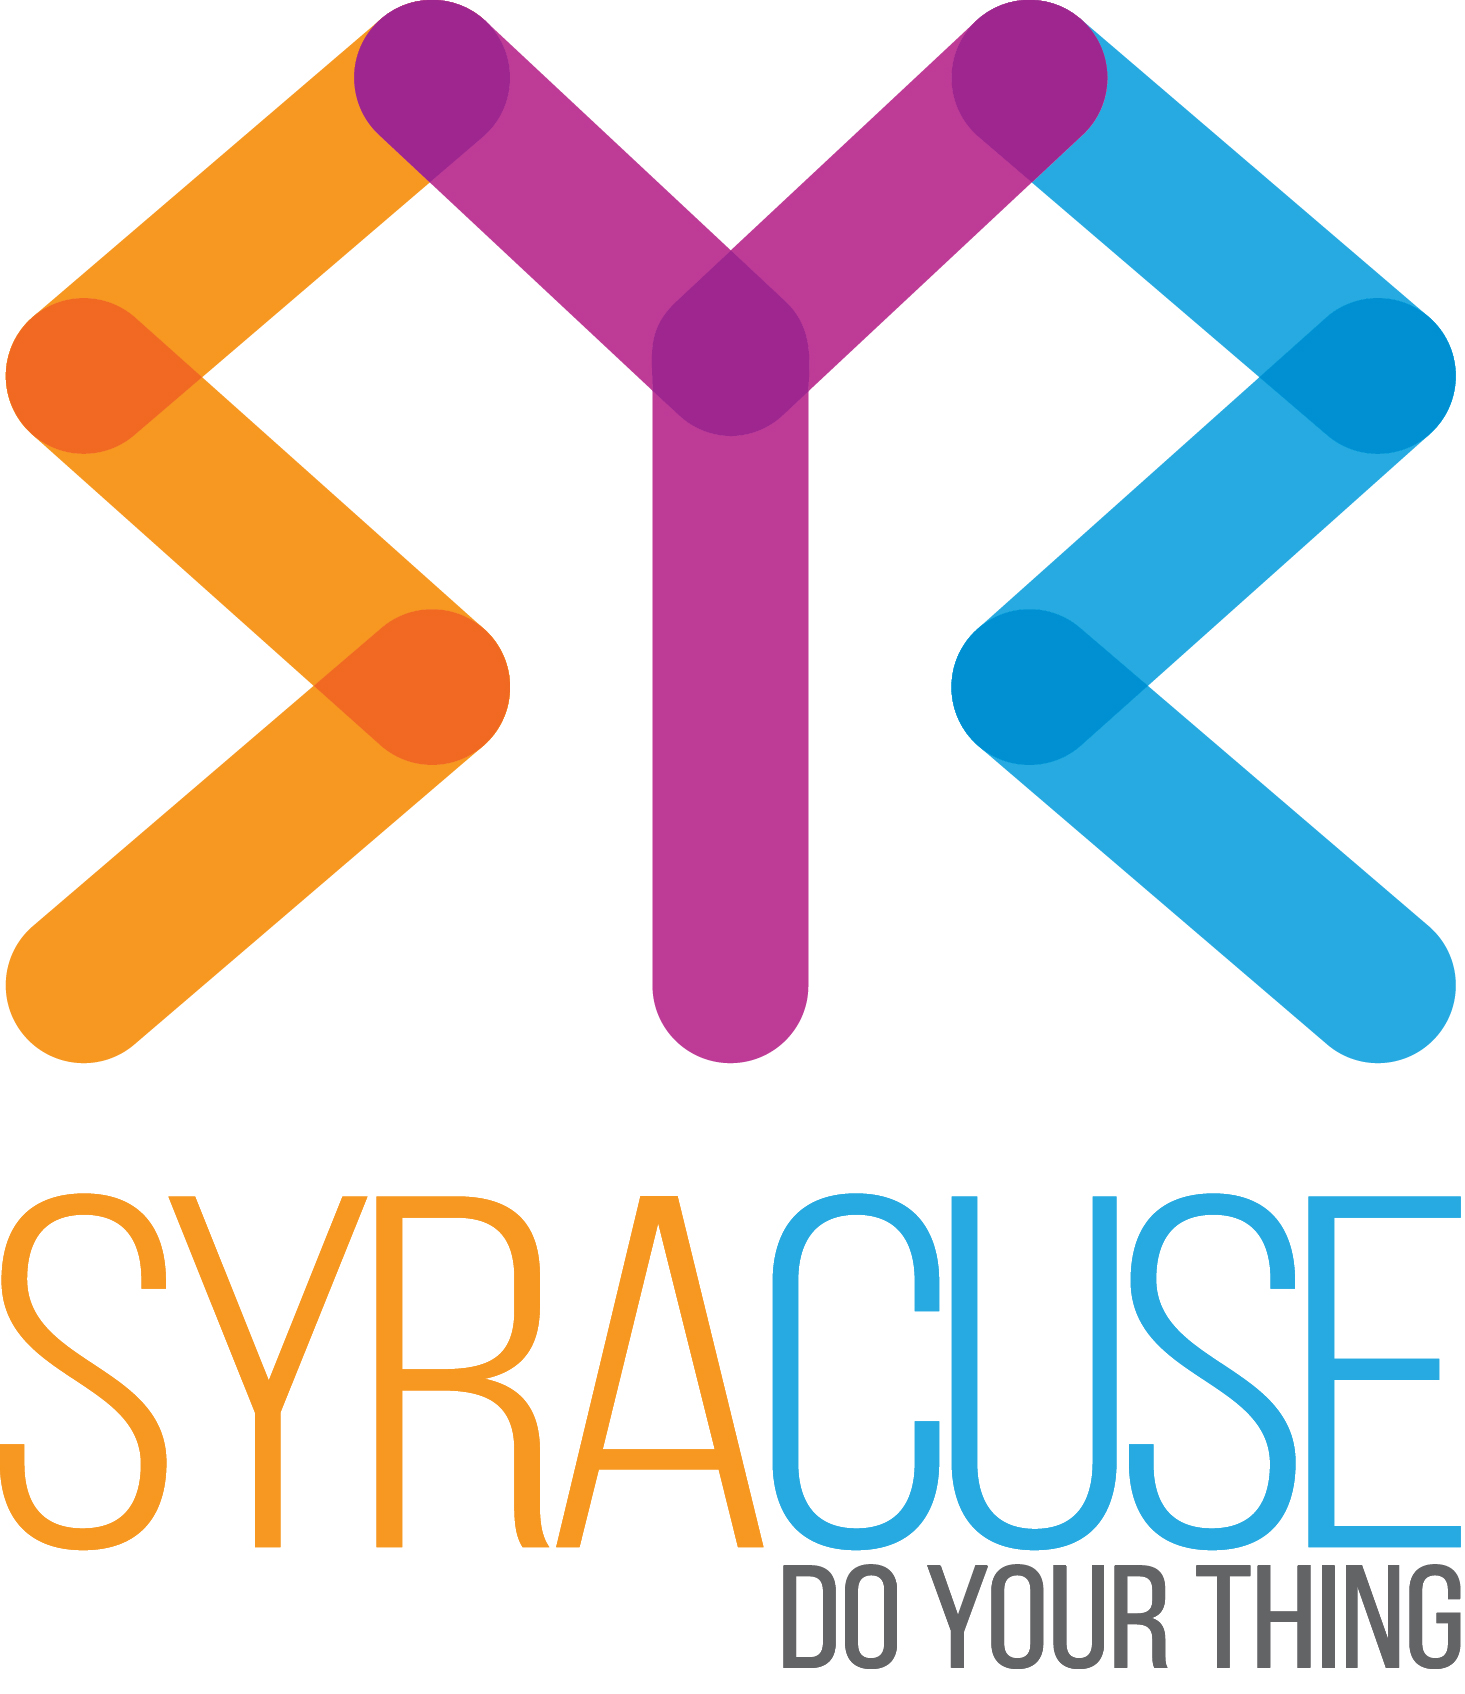 visit syracuse - do your thing